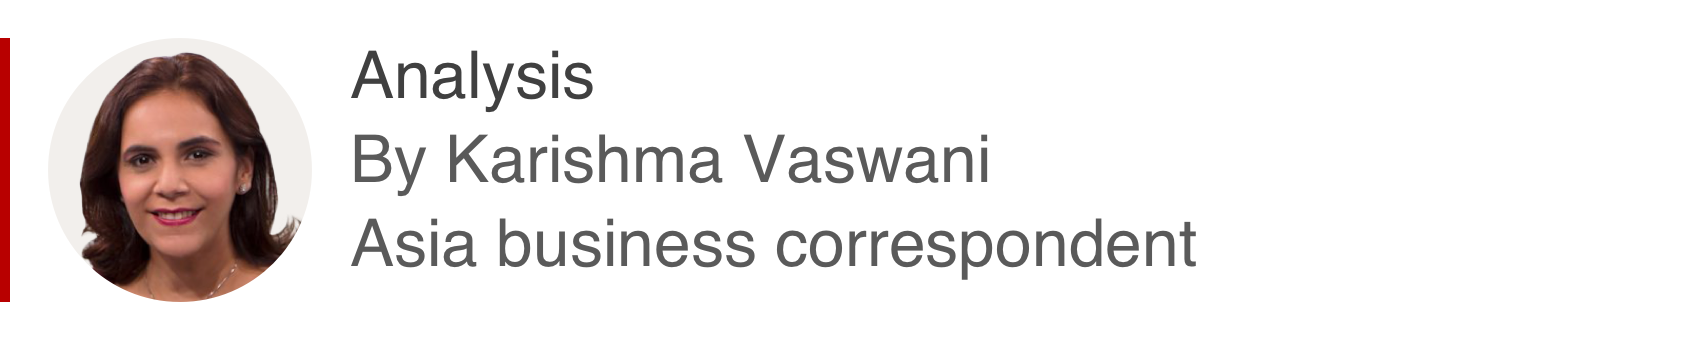 Analysis box by Karishma Vaswani, Asia business correspondent